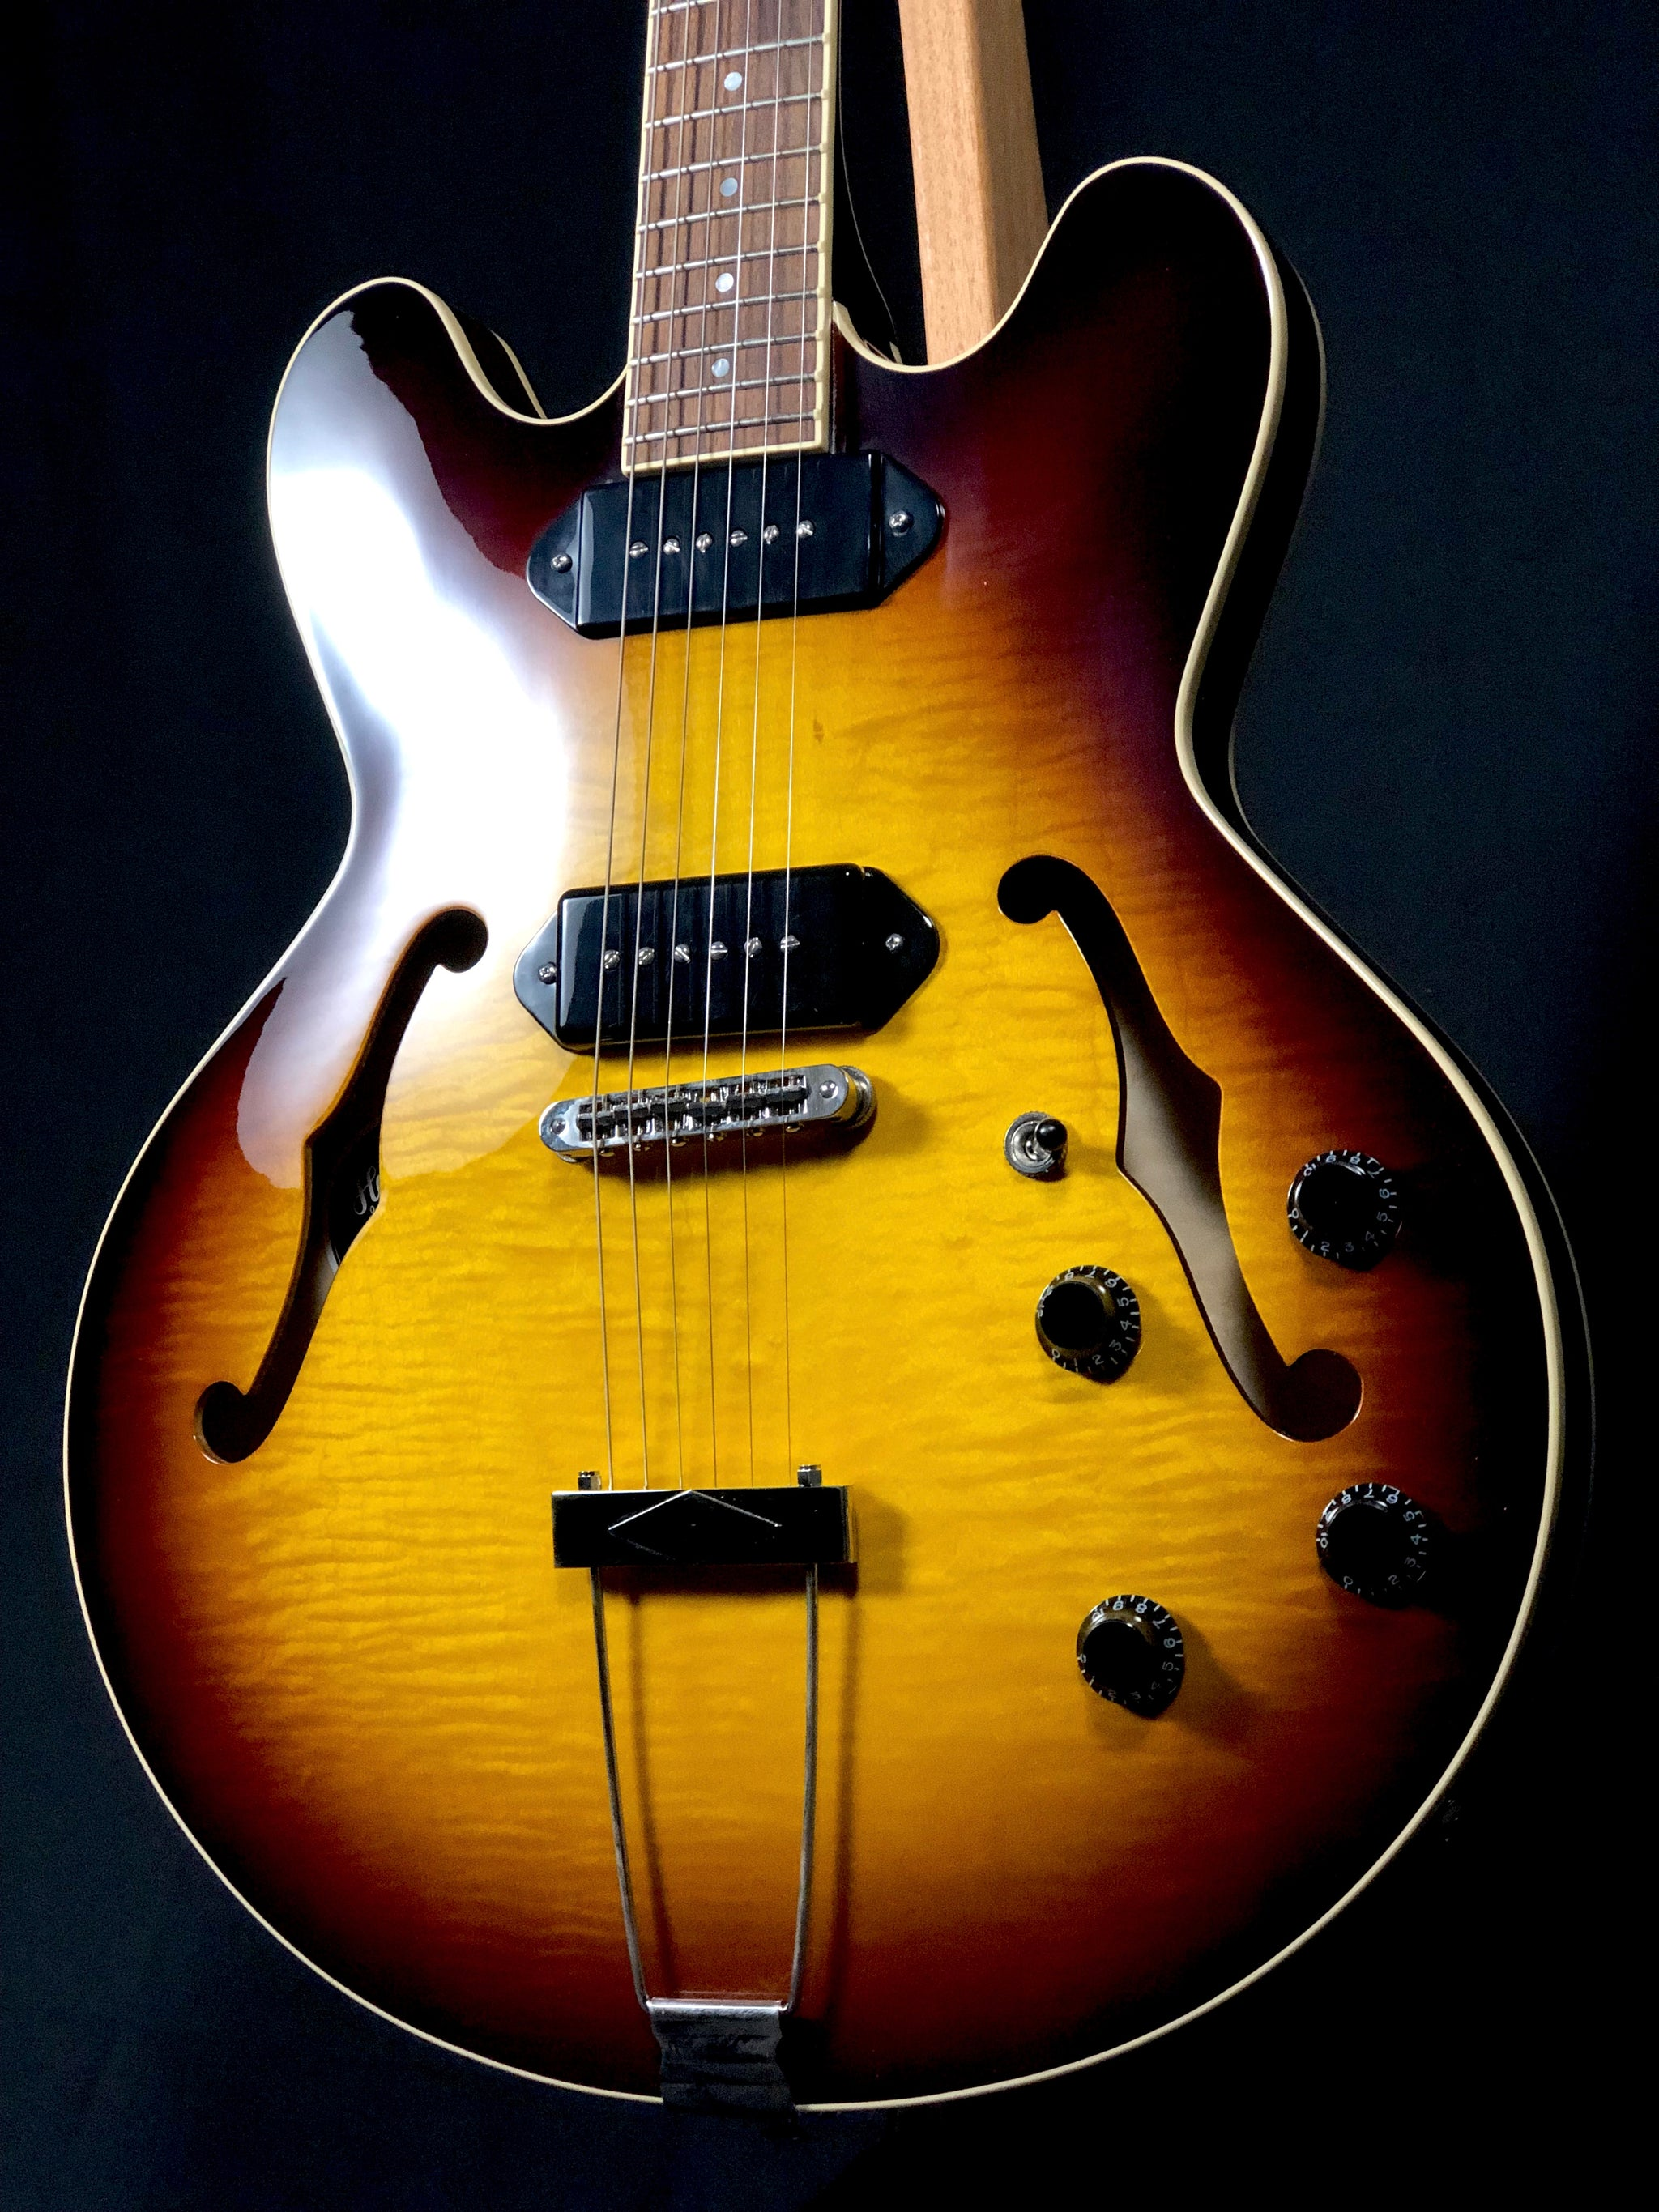 H530 Thinline in Classic Original Sunburst